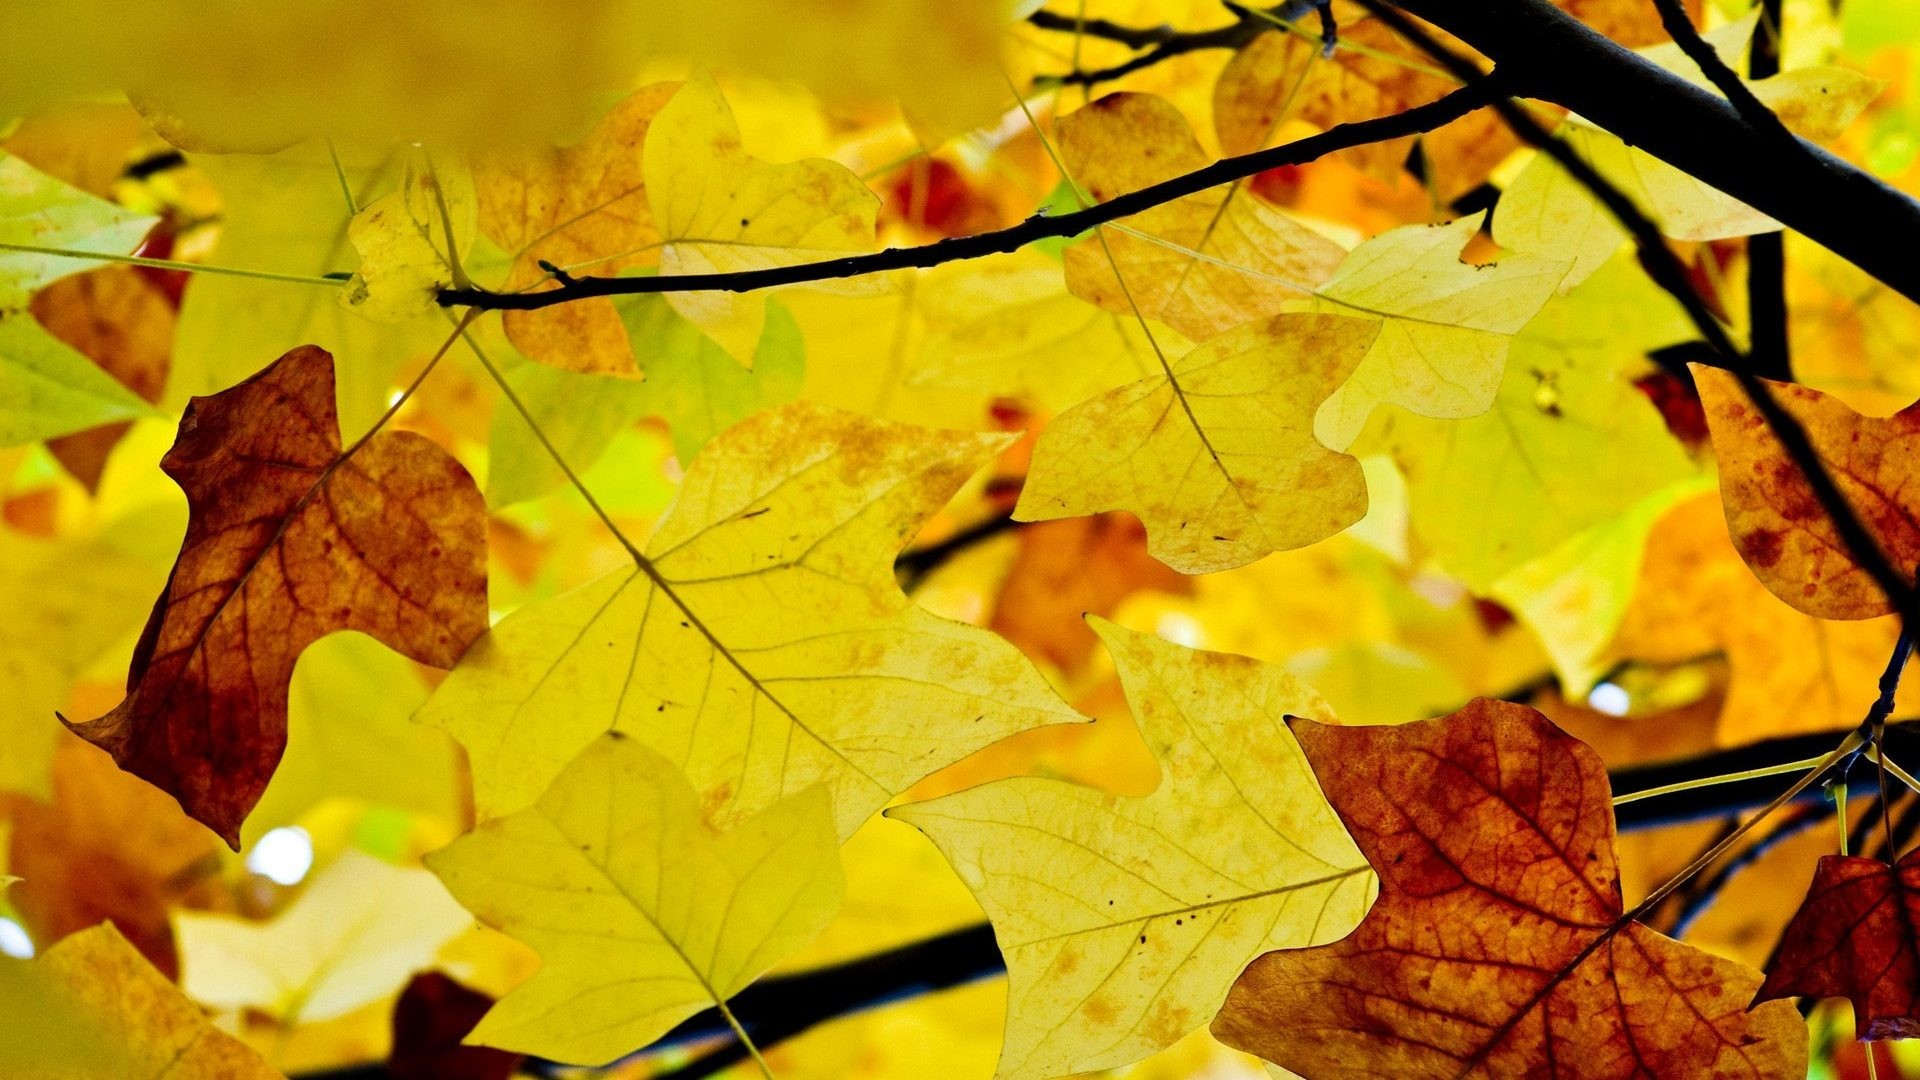 #AA6600 Color – Nature Season Autumn Hd Free Download for HD 16:9 High